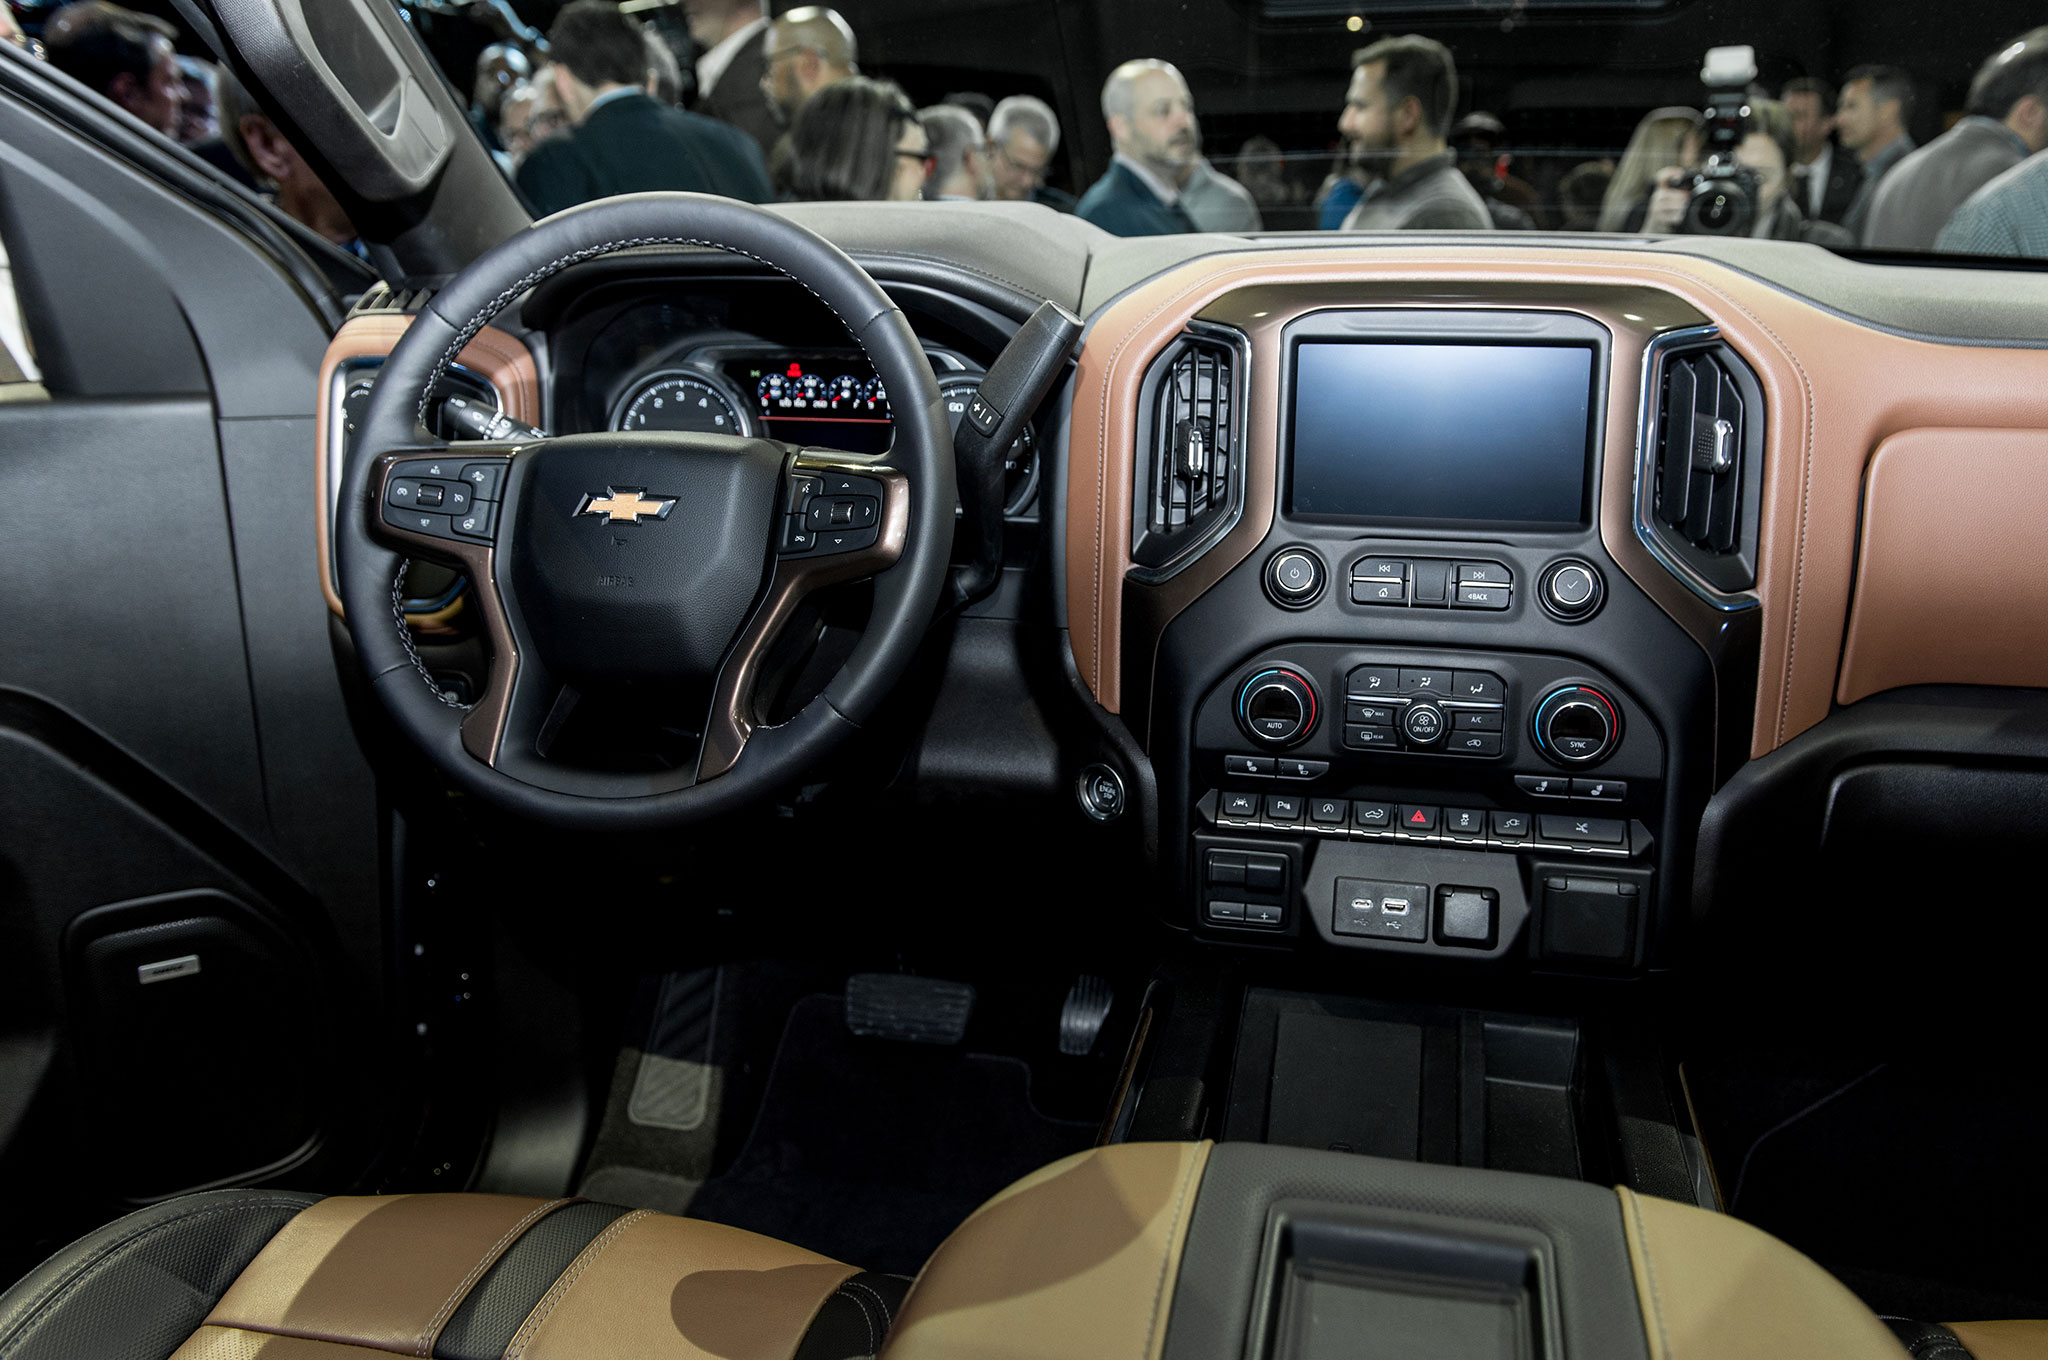 2019 Chevrolet Silverado 1500 High Country interior ...